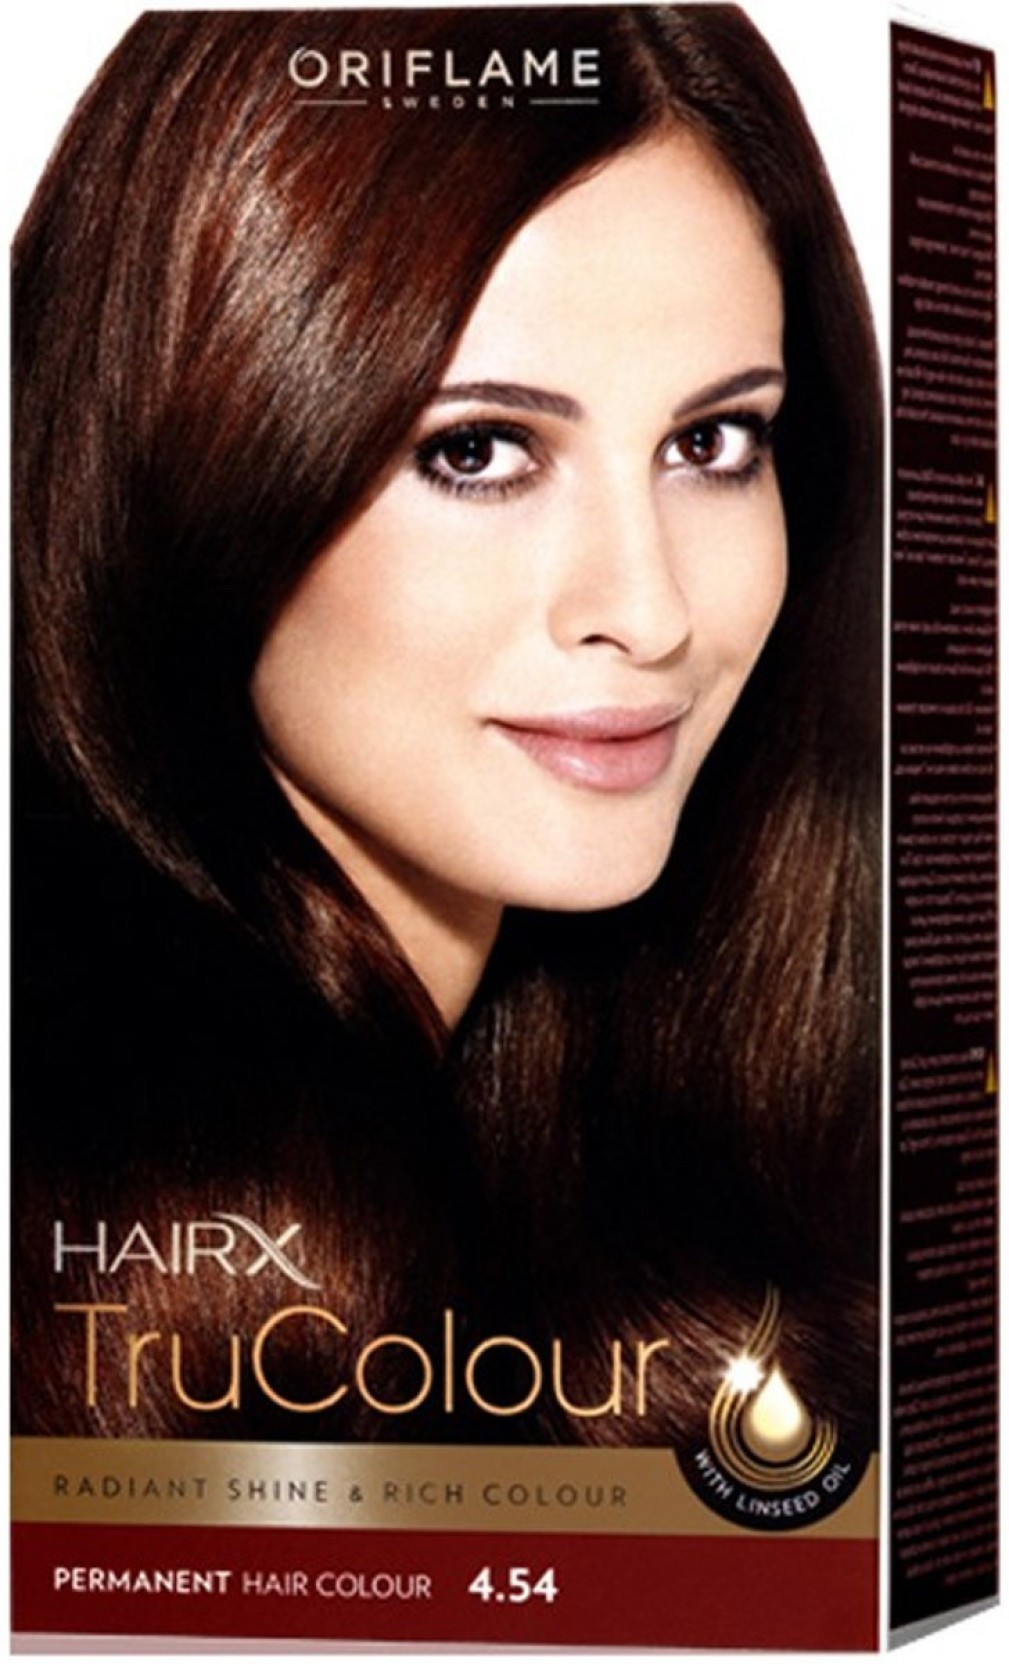 Hairx Tru Colour Radiant Shine Rich Hair Color Price In India